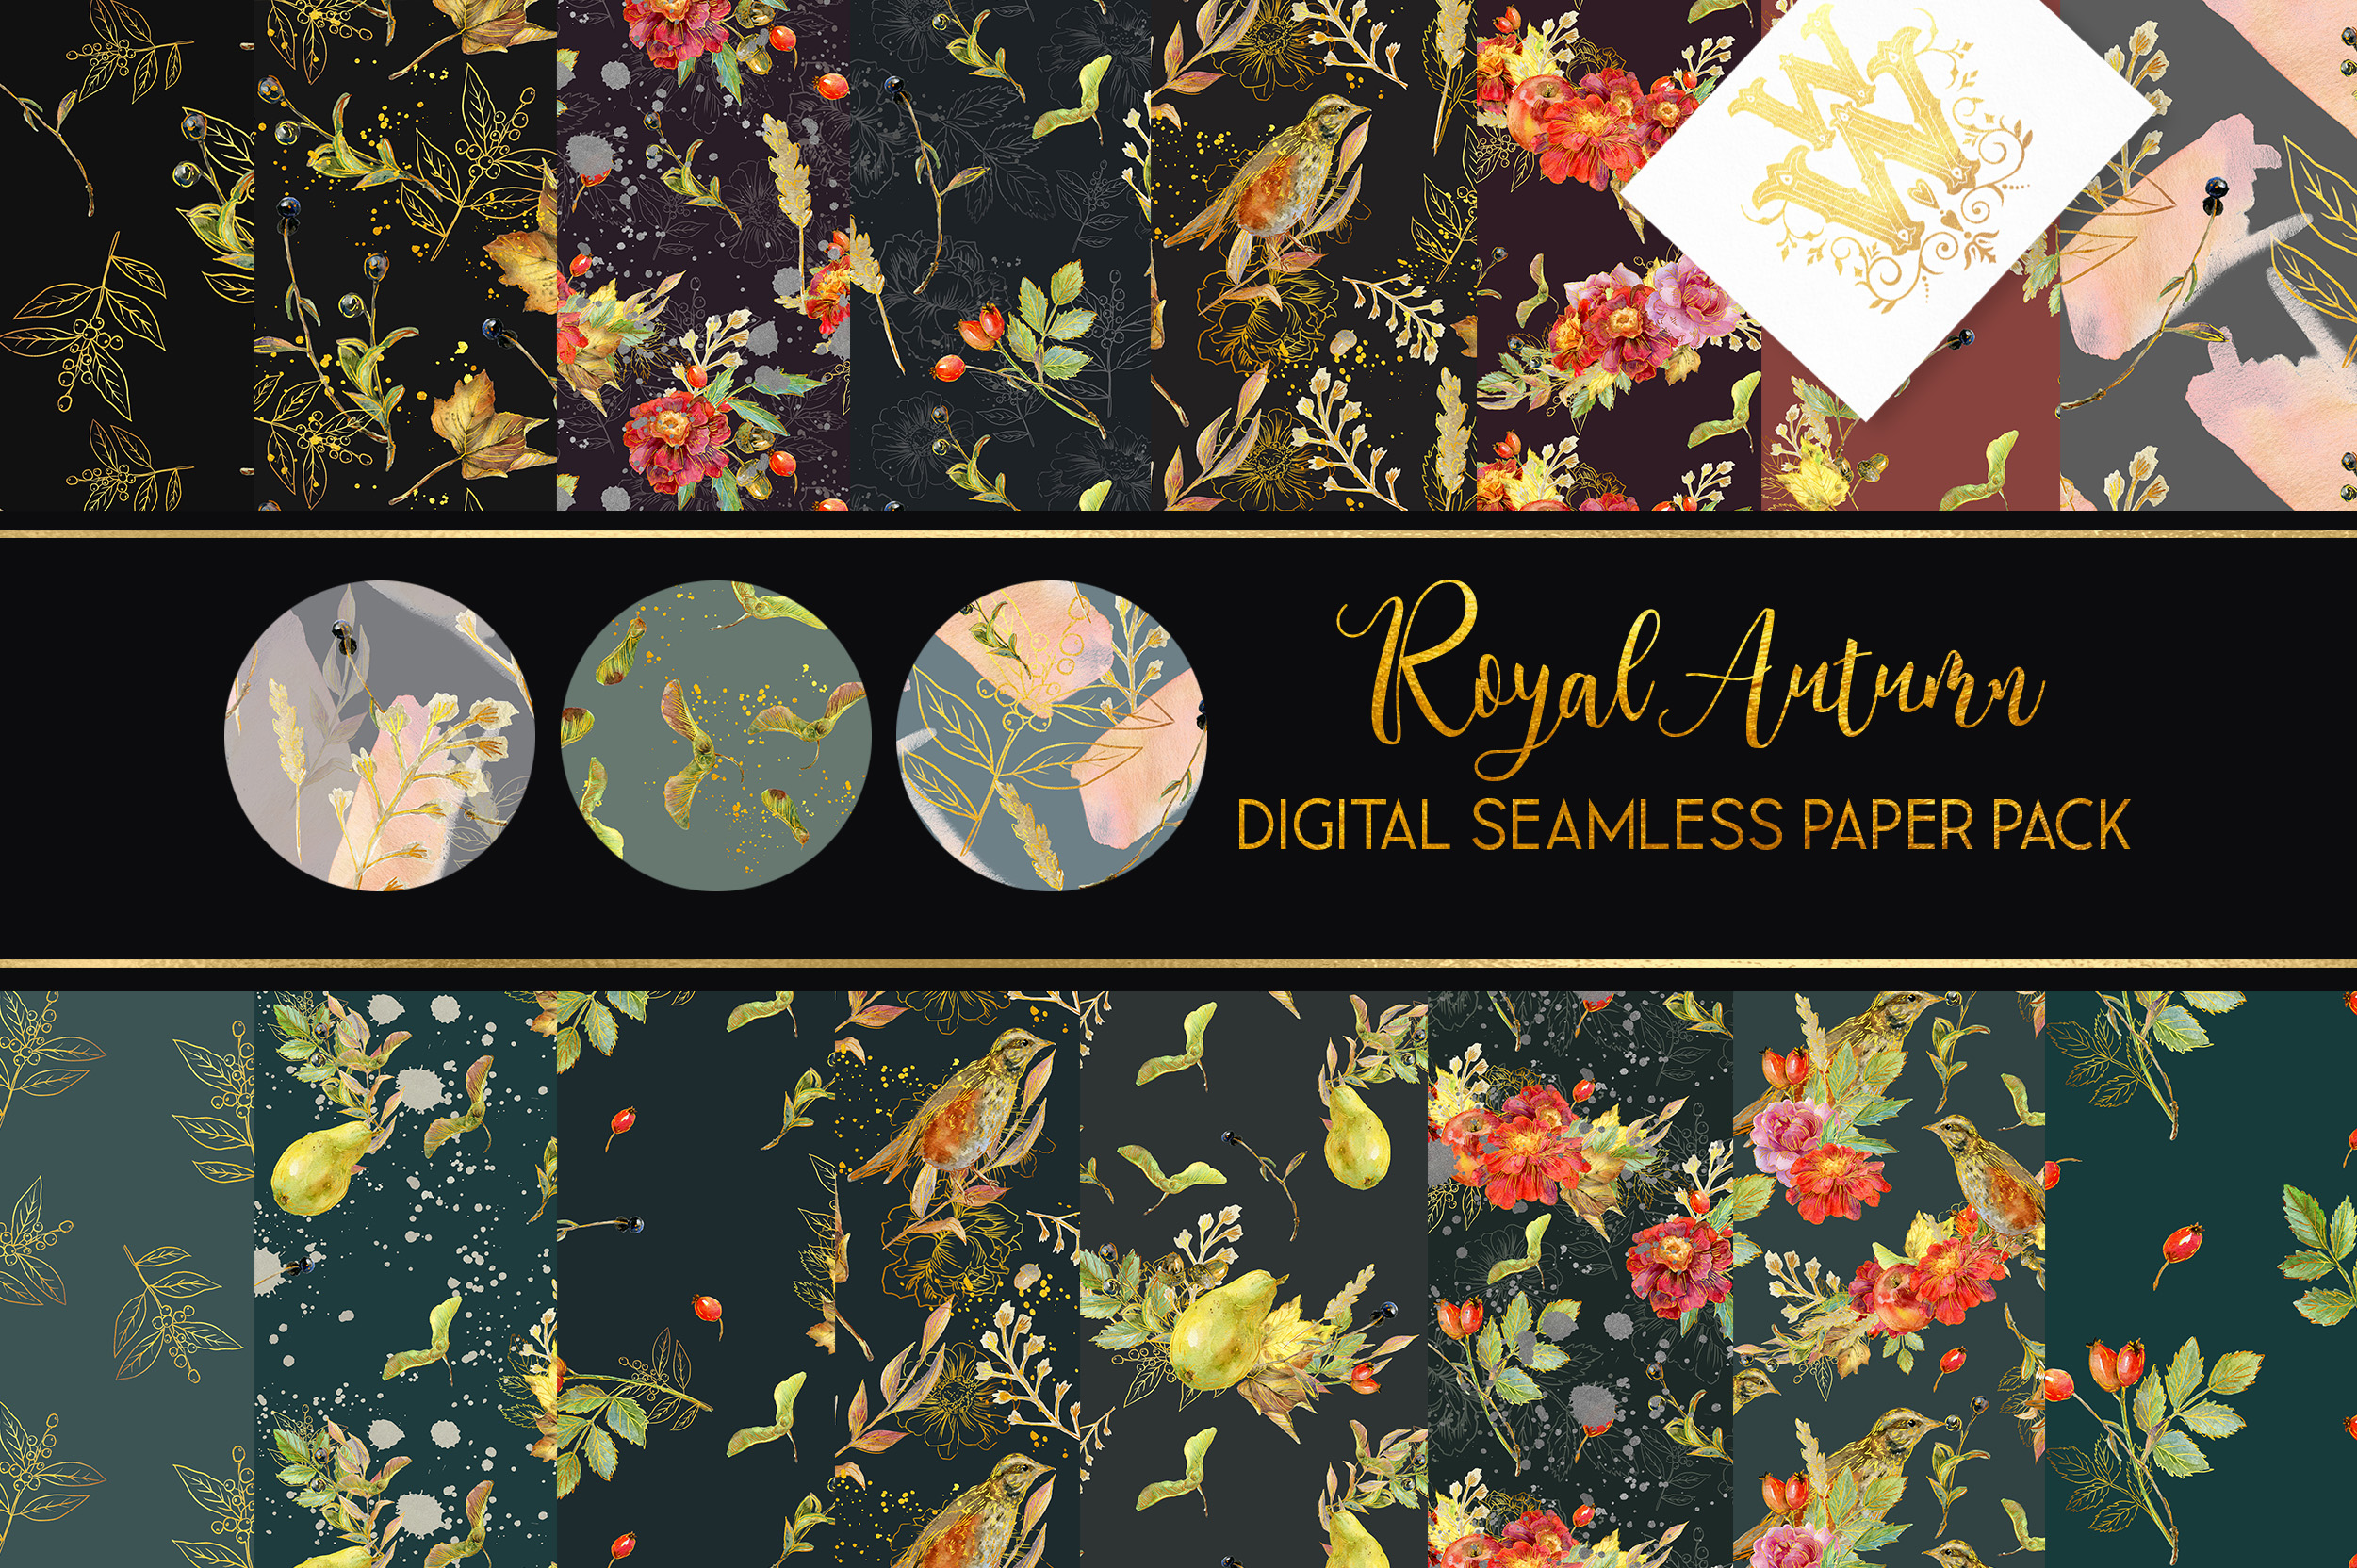 Royal Autumn watercolor seamless paper pack, fall pattern example image 1